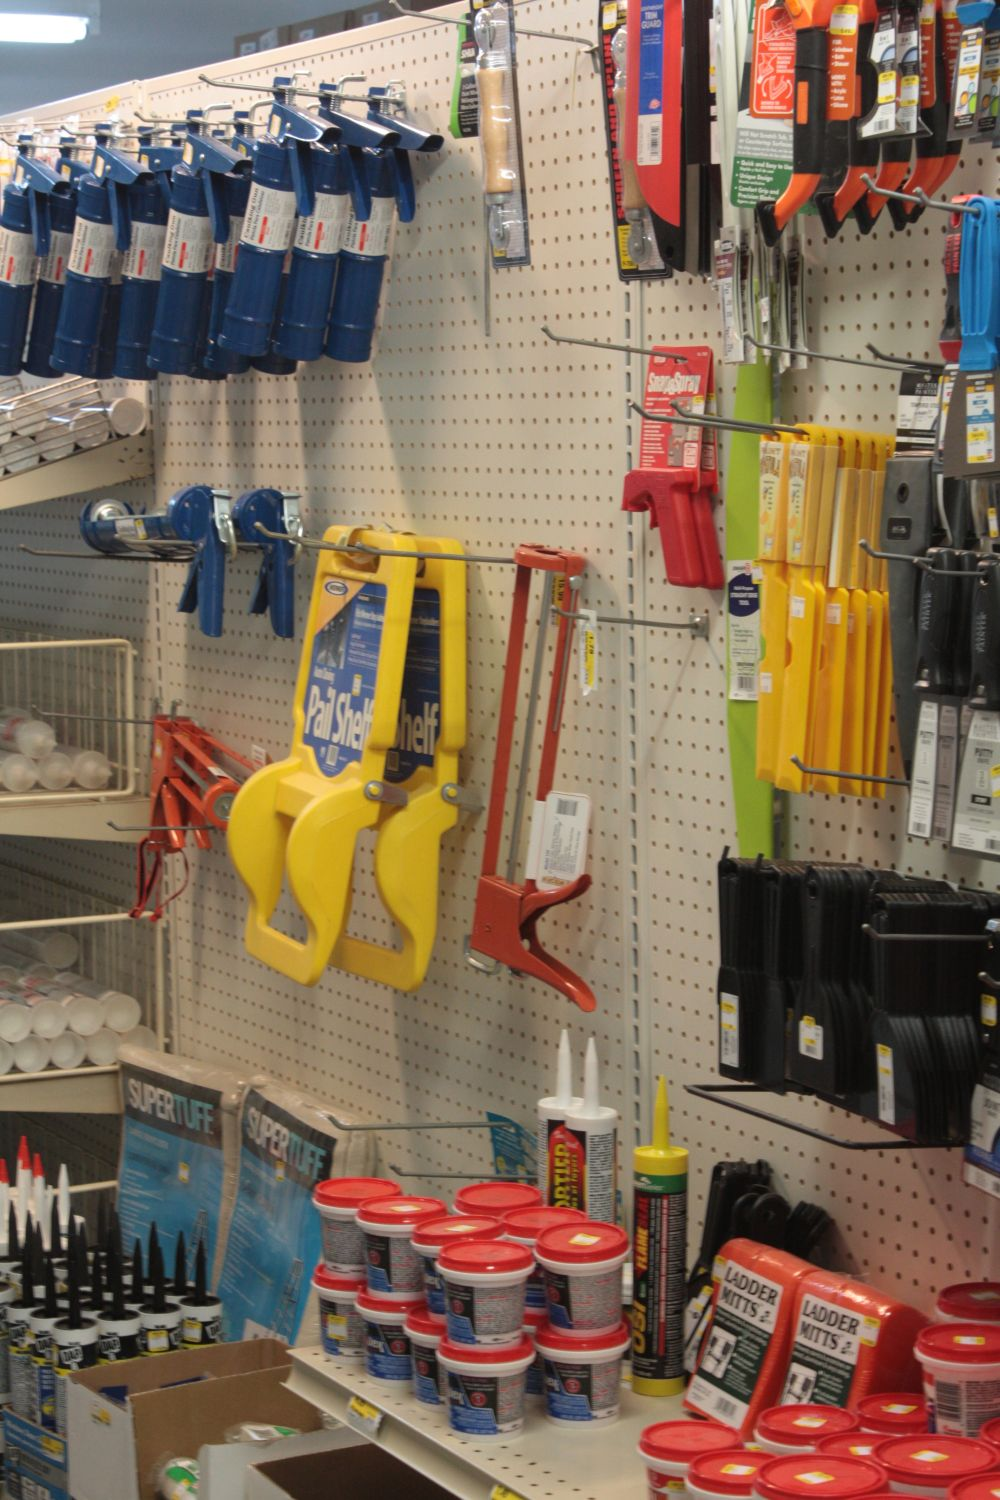 Hardware supplies in Ludlow, KY